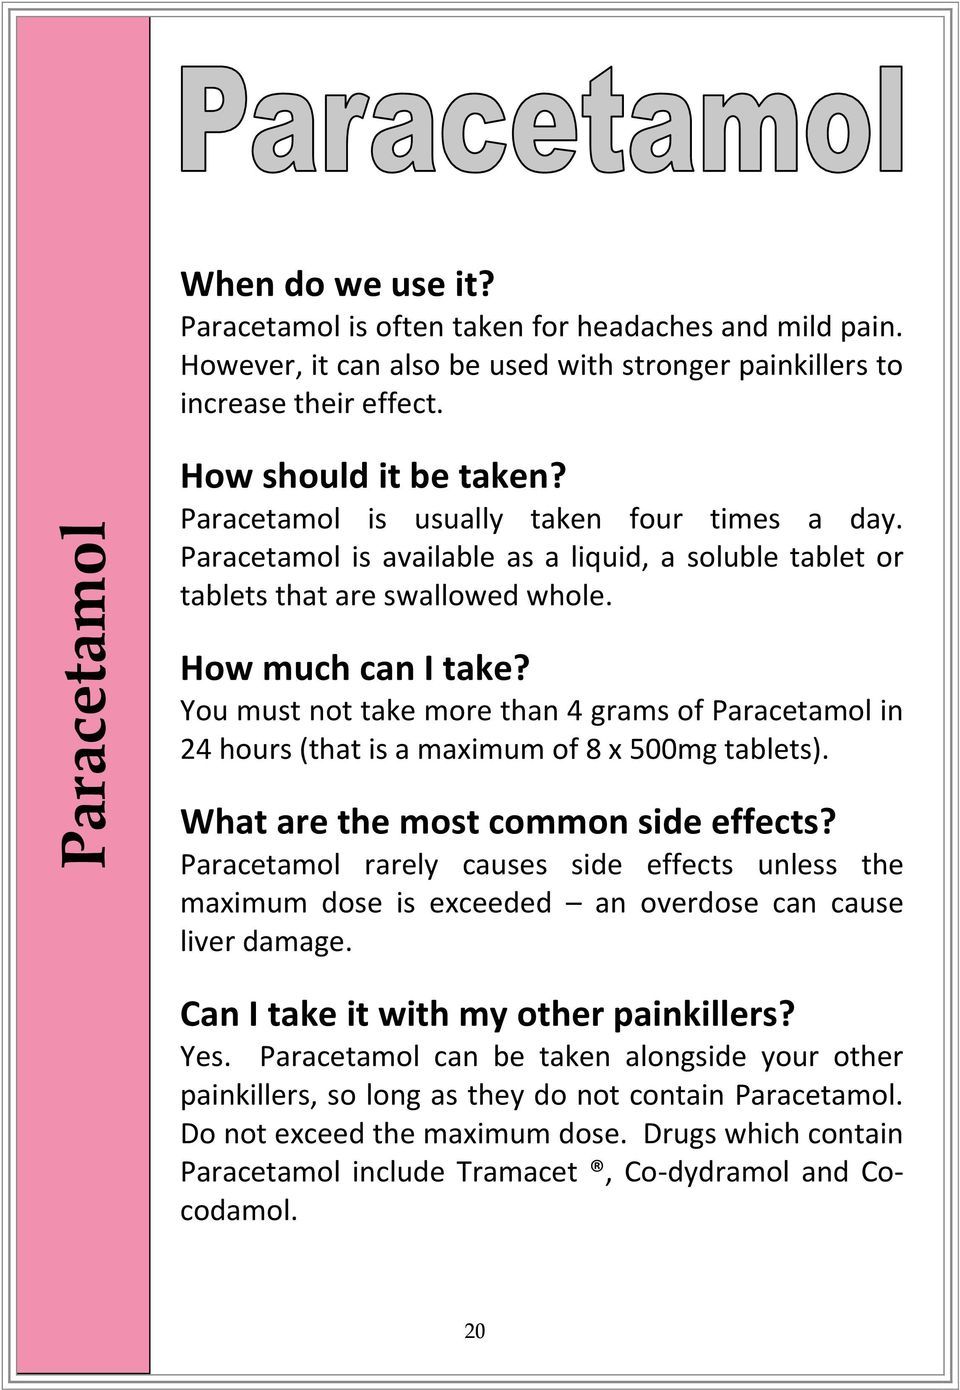 You must not take more than 4 grams of Paracetamol in 24 hours (that is a maximum of 8 x 500mg tablets).